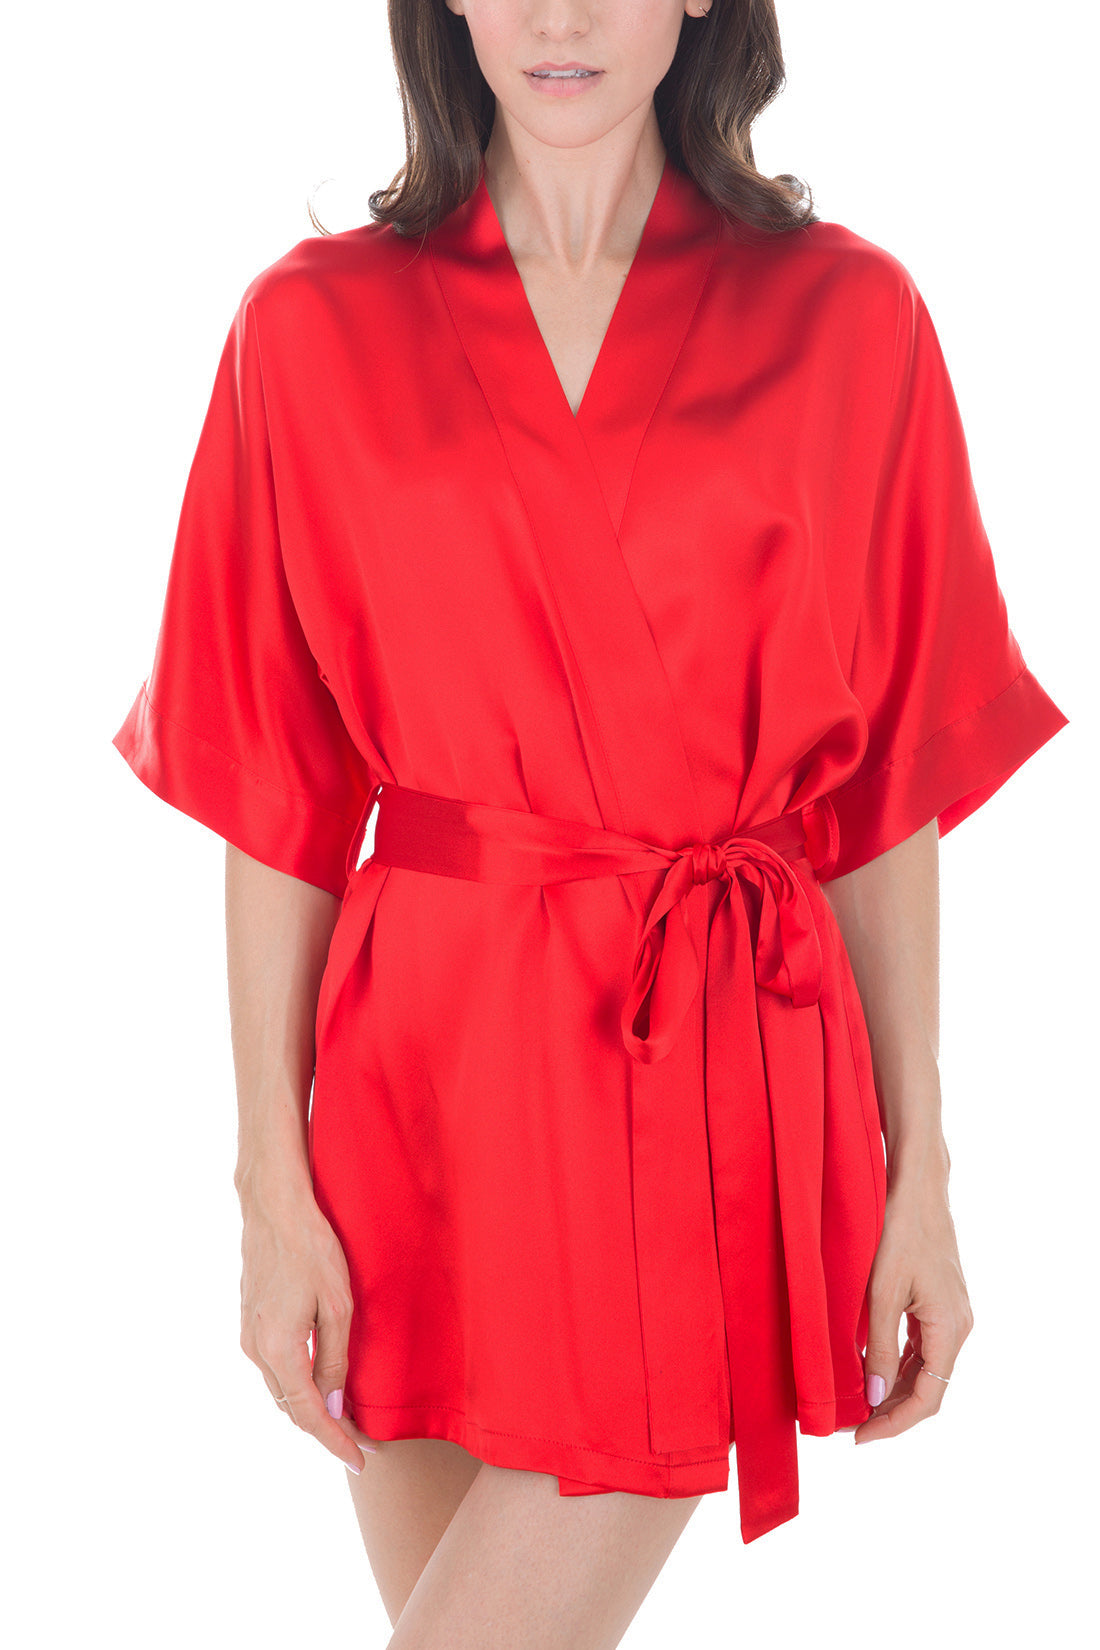 Women's Luxury Silk Sleepwear Sexy 100% Silk Short Robe, Red -OSCAR ROSSA